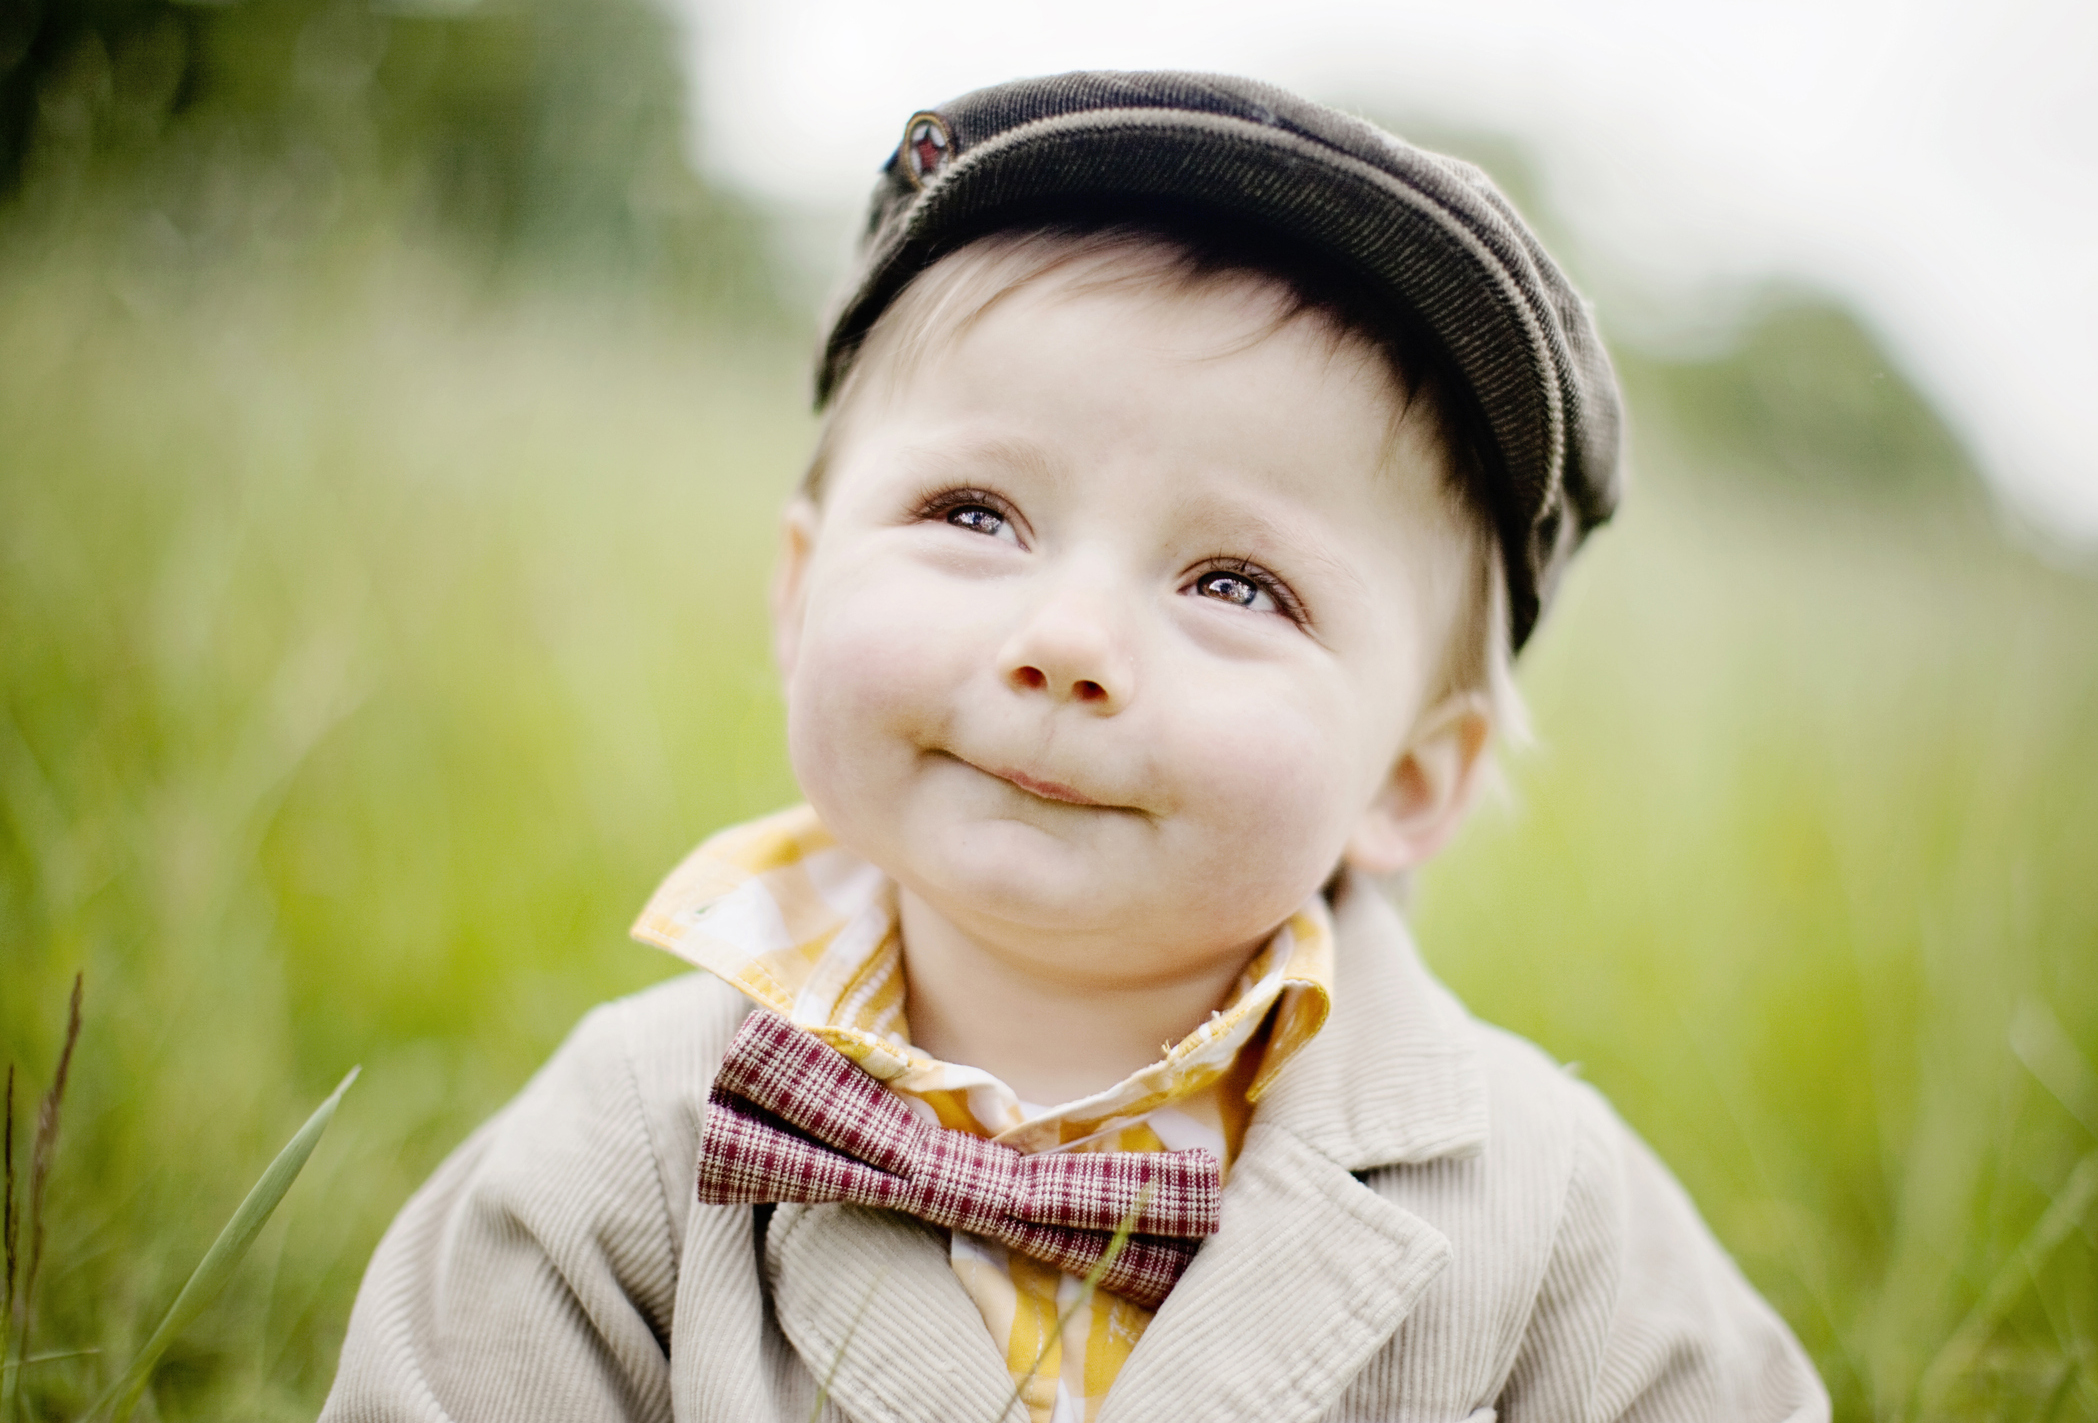 Old Man Names: Best Old Fashioned Boy Names for Newborns | Practical  Parenting Australia